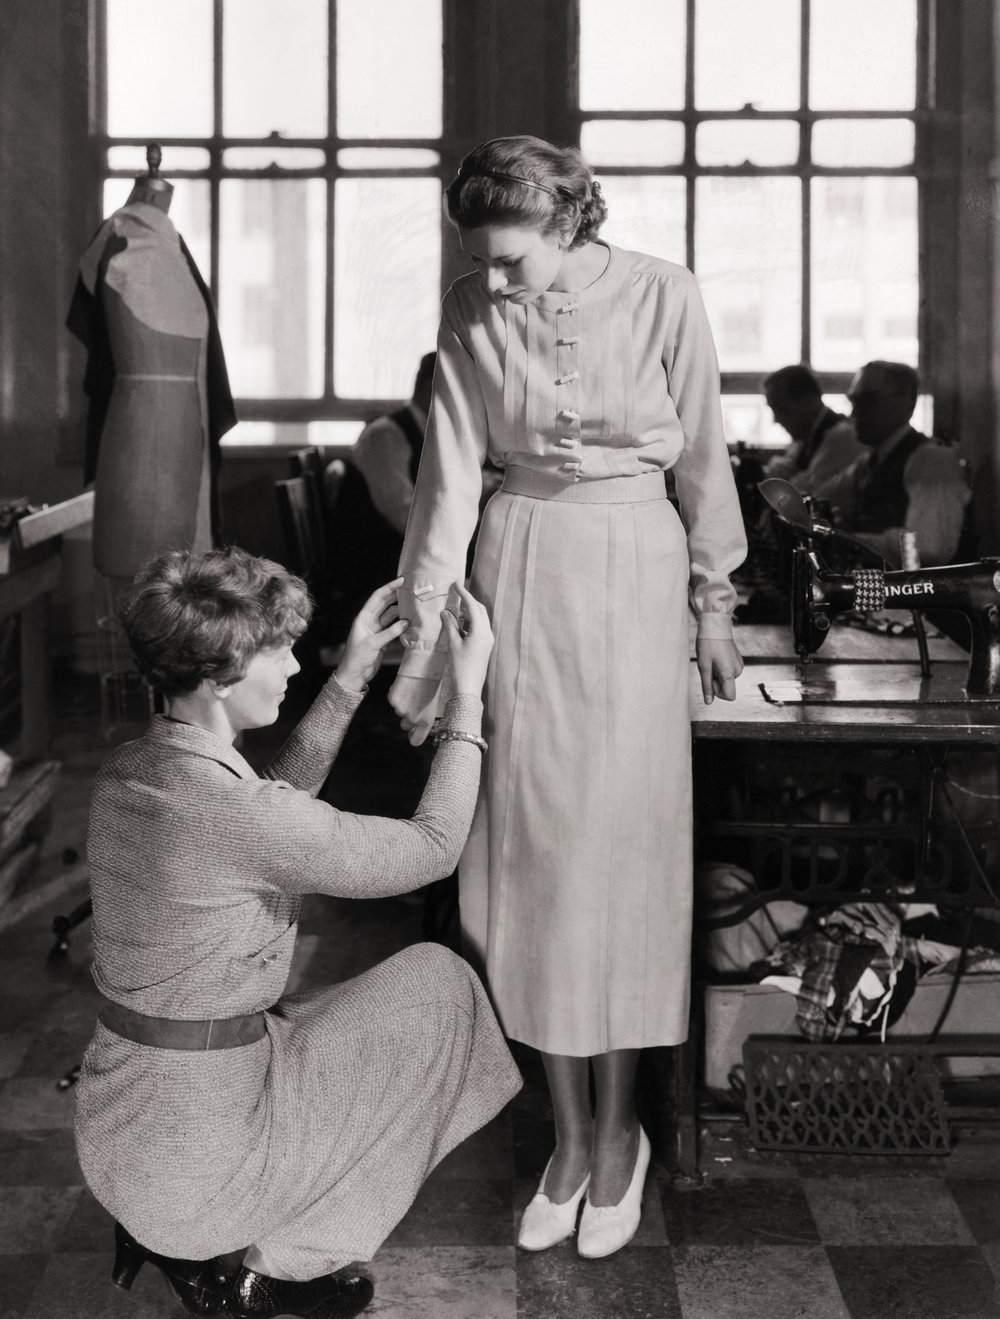 Amelia Earhart putting the finishing touches on a blouse. (Photo Courtesy of History.com and Getty Images)